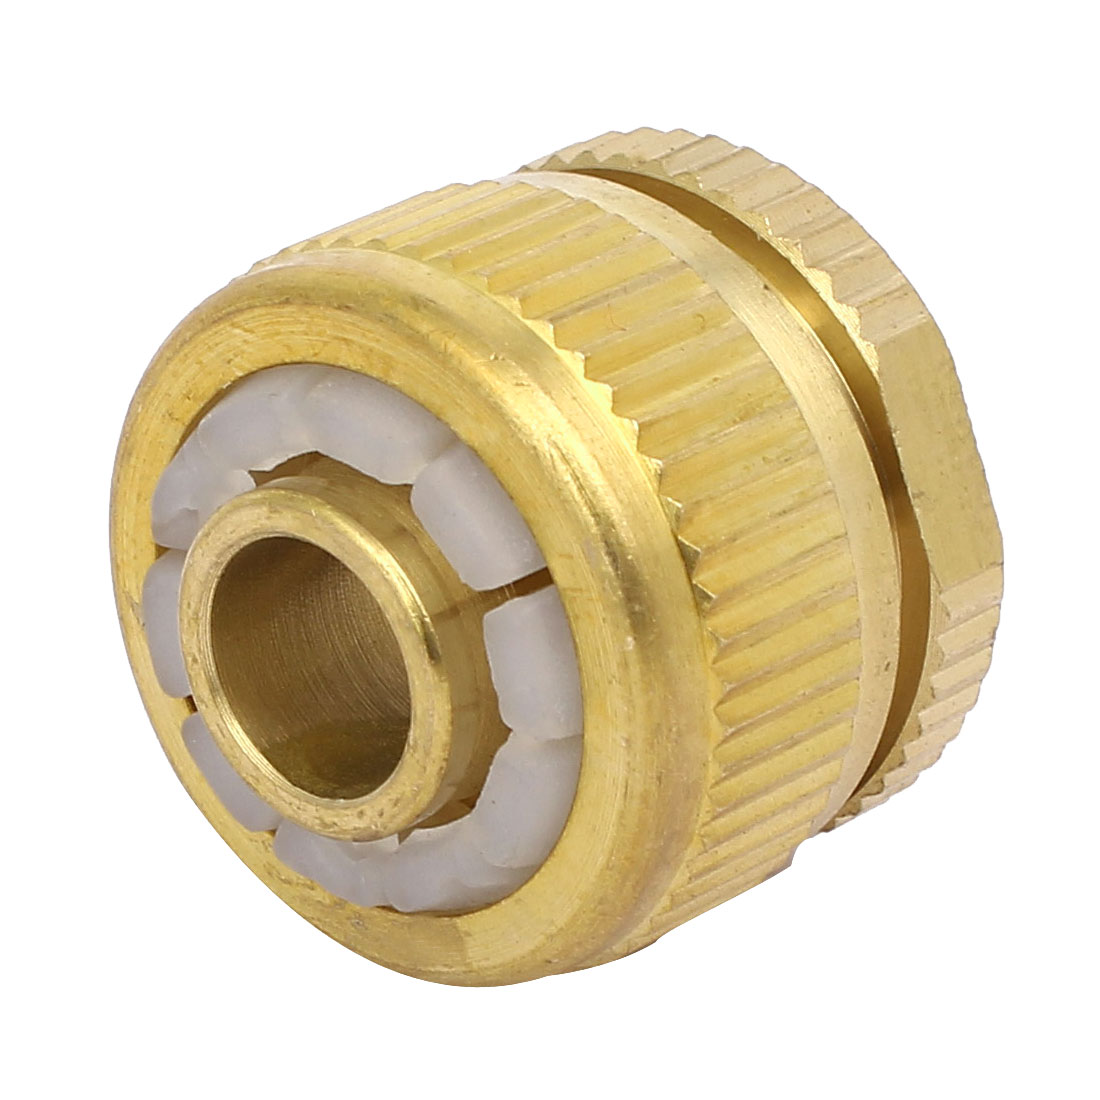 1/2 BSP Male Threaded Brass Faucet Tap Adapter Hose Quick Connector